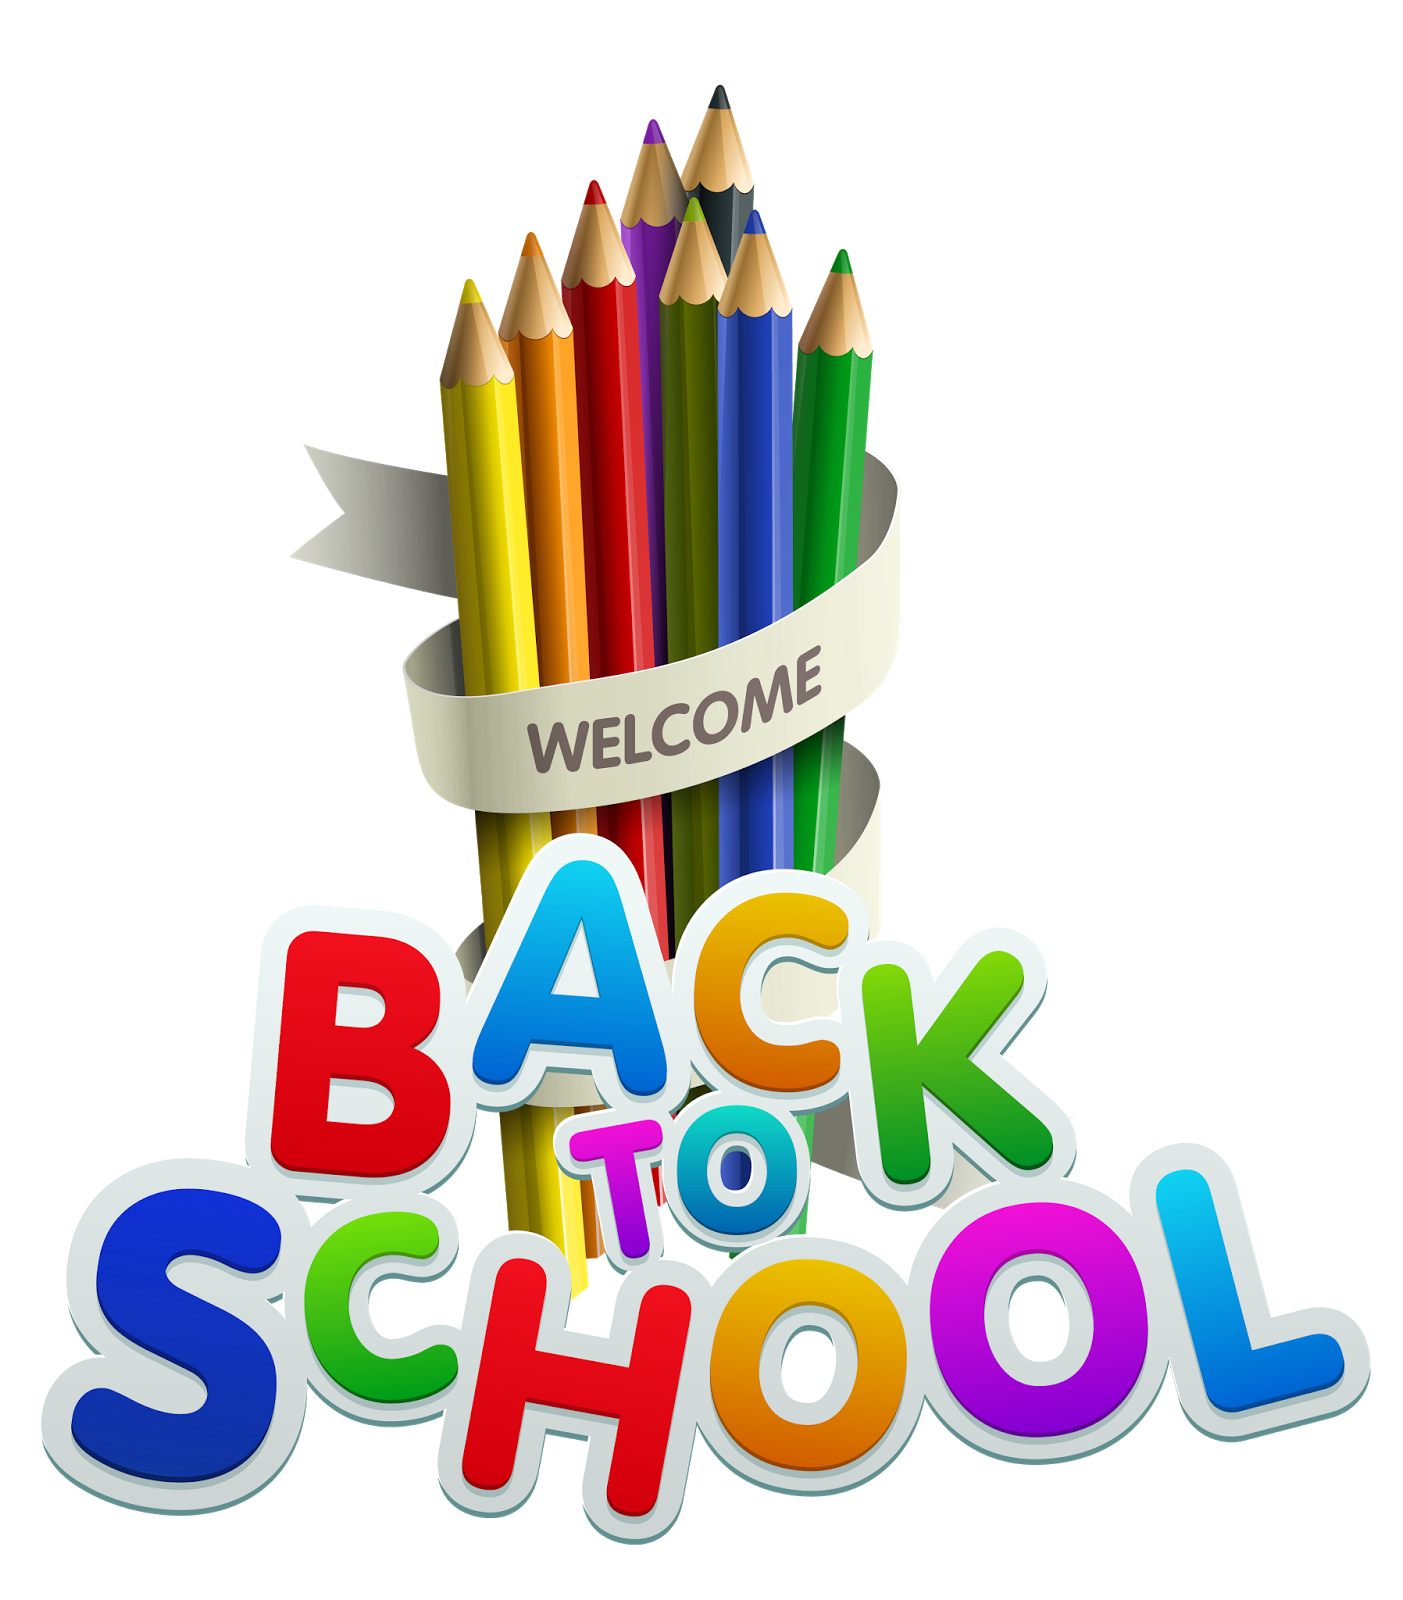 Best Free Back To School Png Image 1403x1600, Back To School HD PNG Download